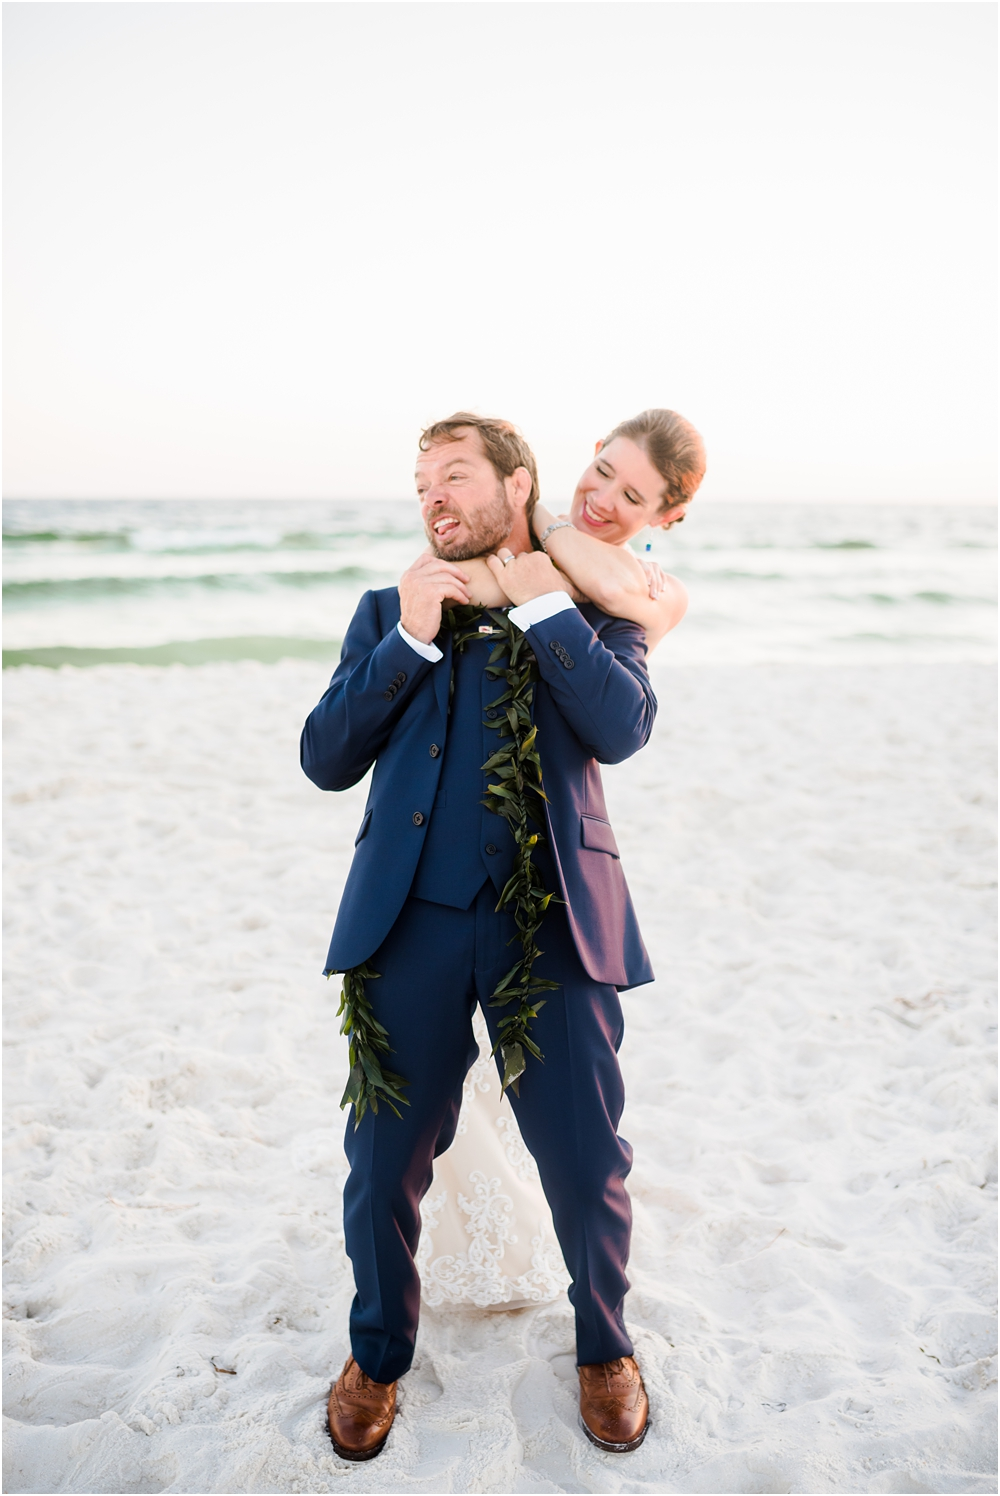 ledman-wedding-kiersten-stevenson-photography-30a-panama-city-beach-dothan-tallahassee-(501-of-763).JPG